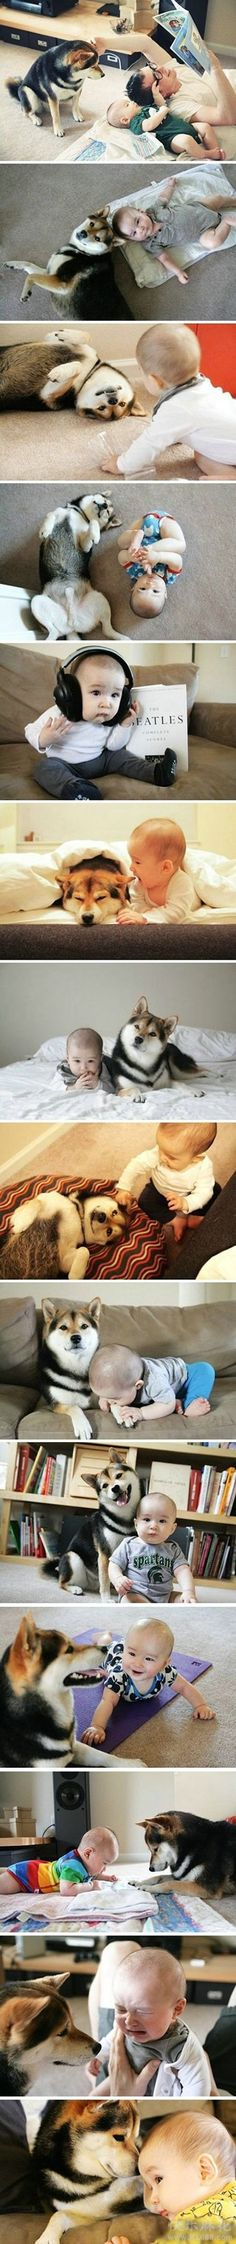 I hope my dogs are like this when we have kids